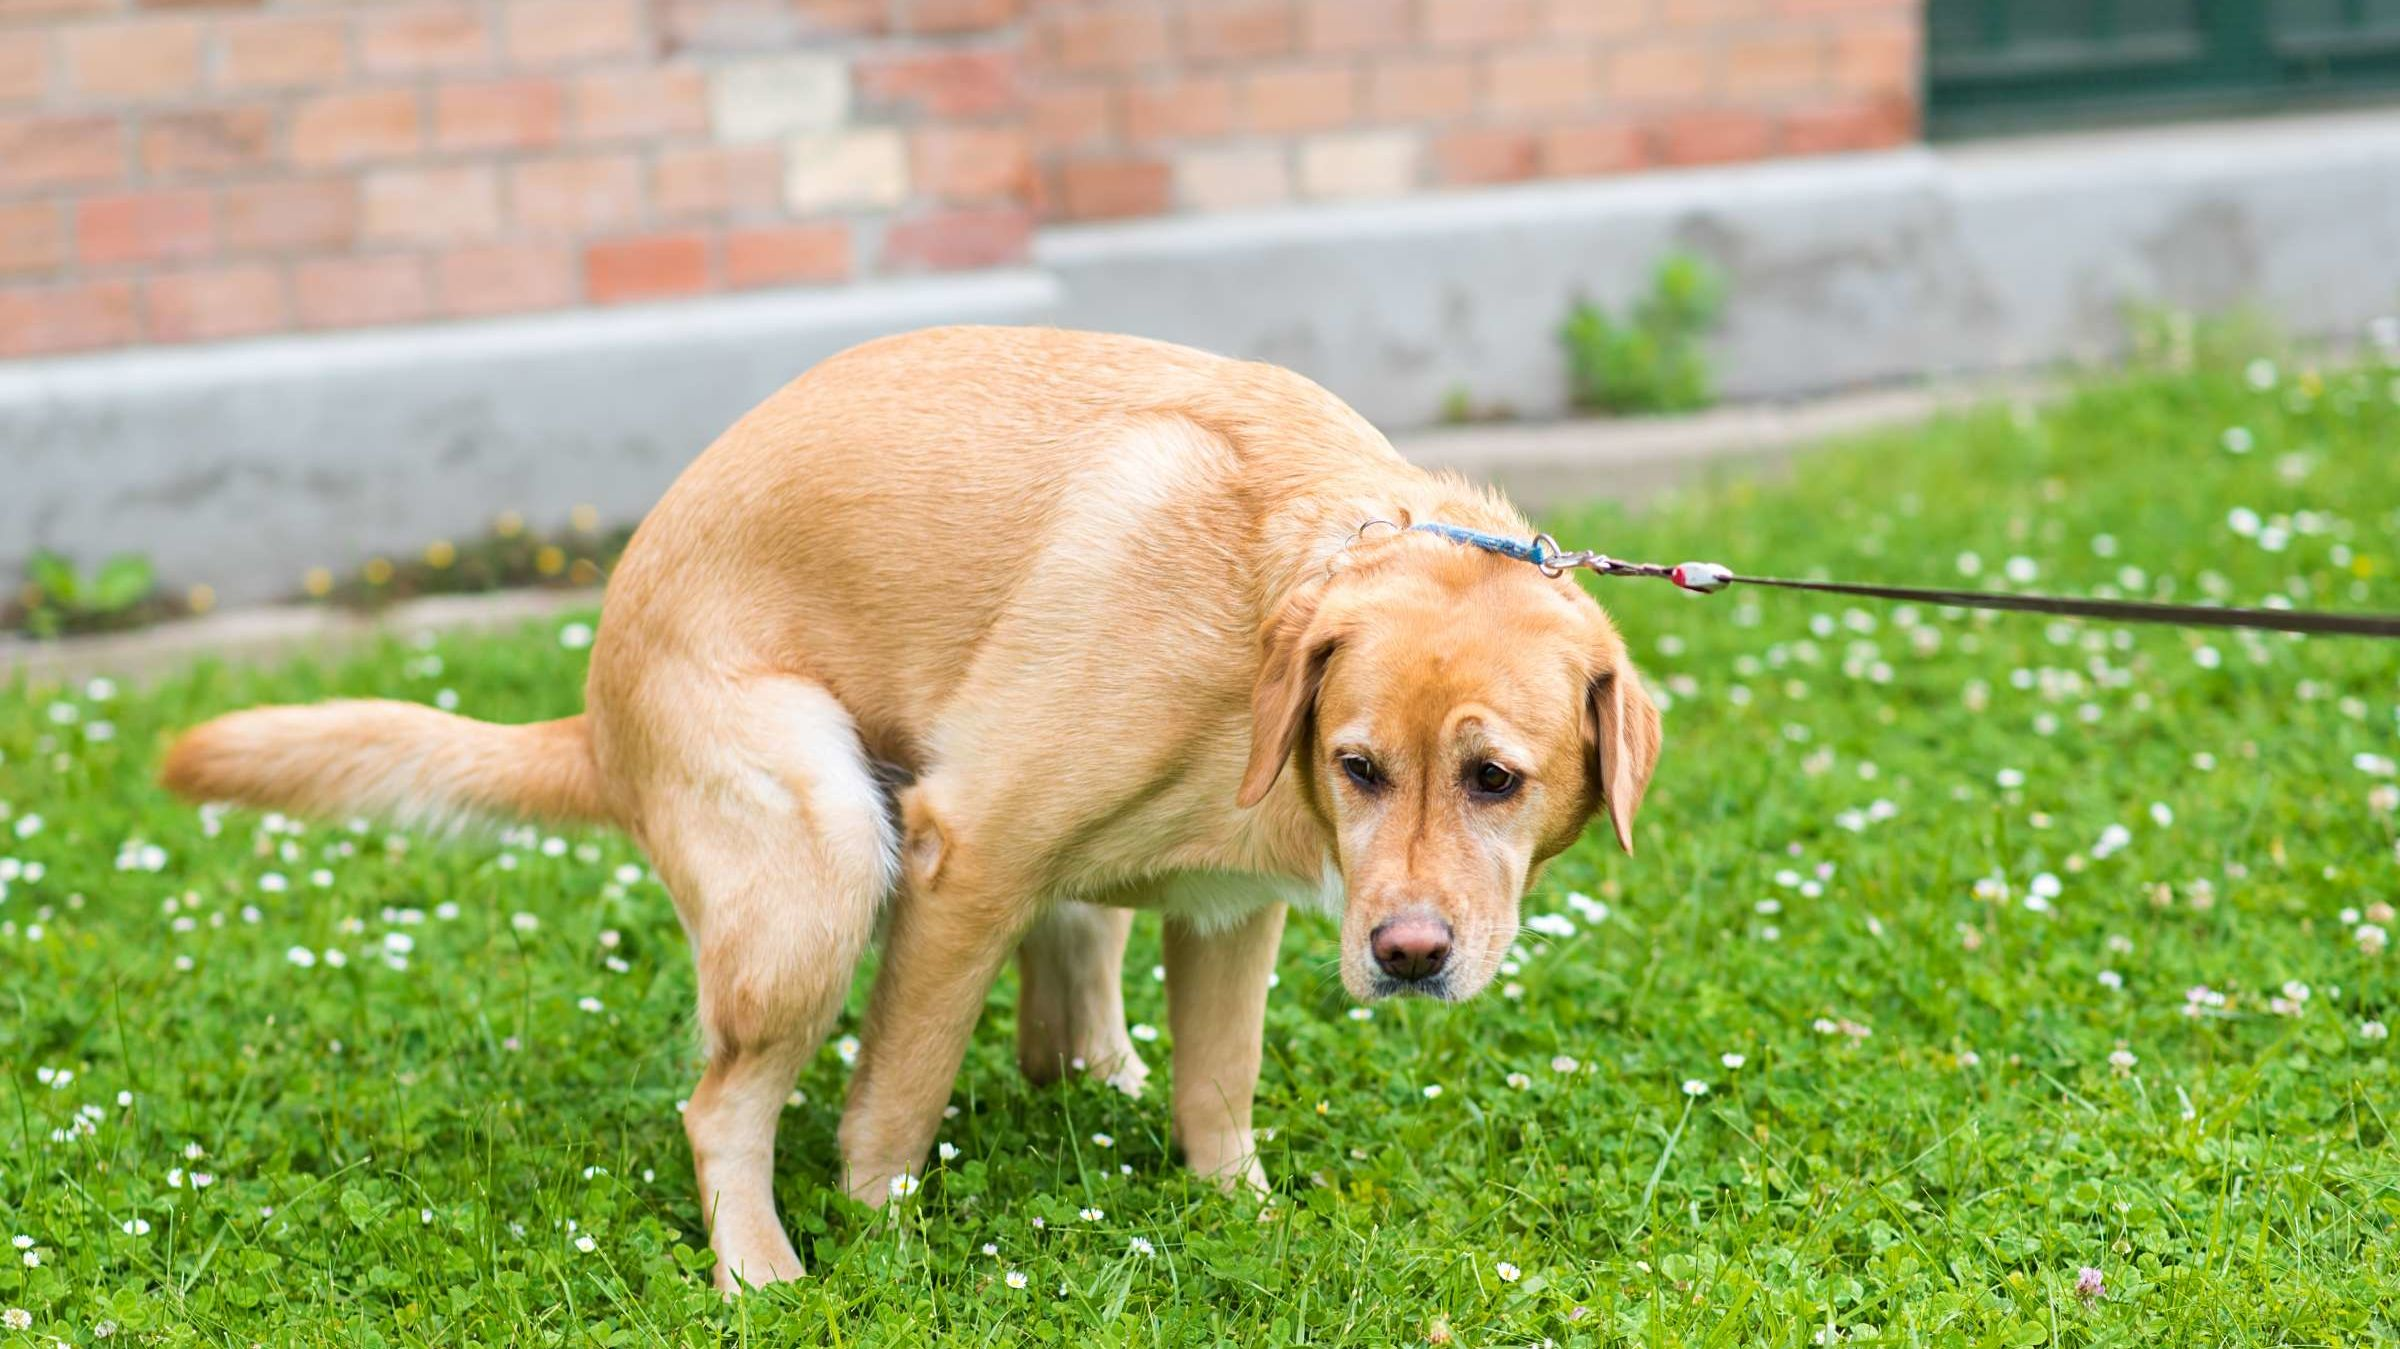 What Happened to the White Dog Poop That Used to Be Everywhere?